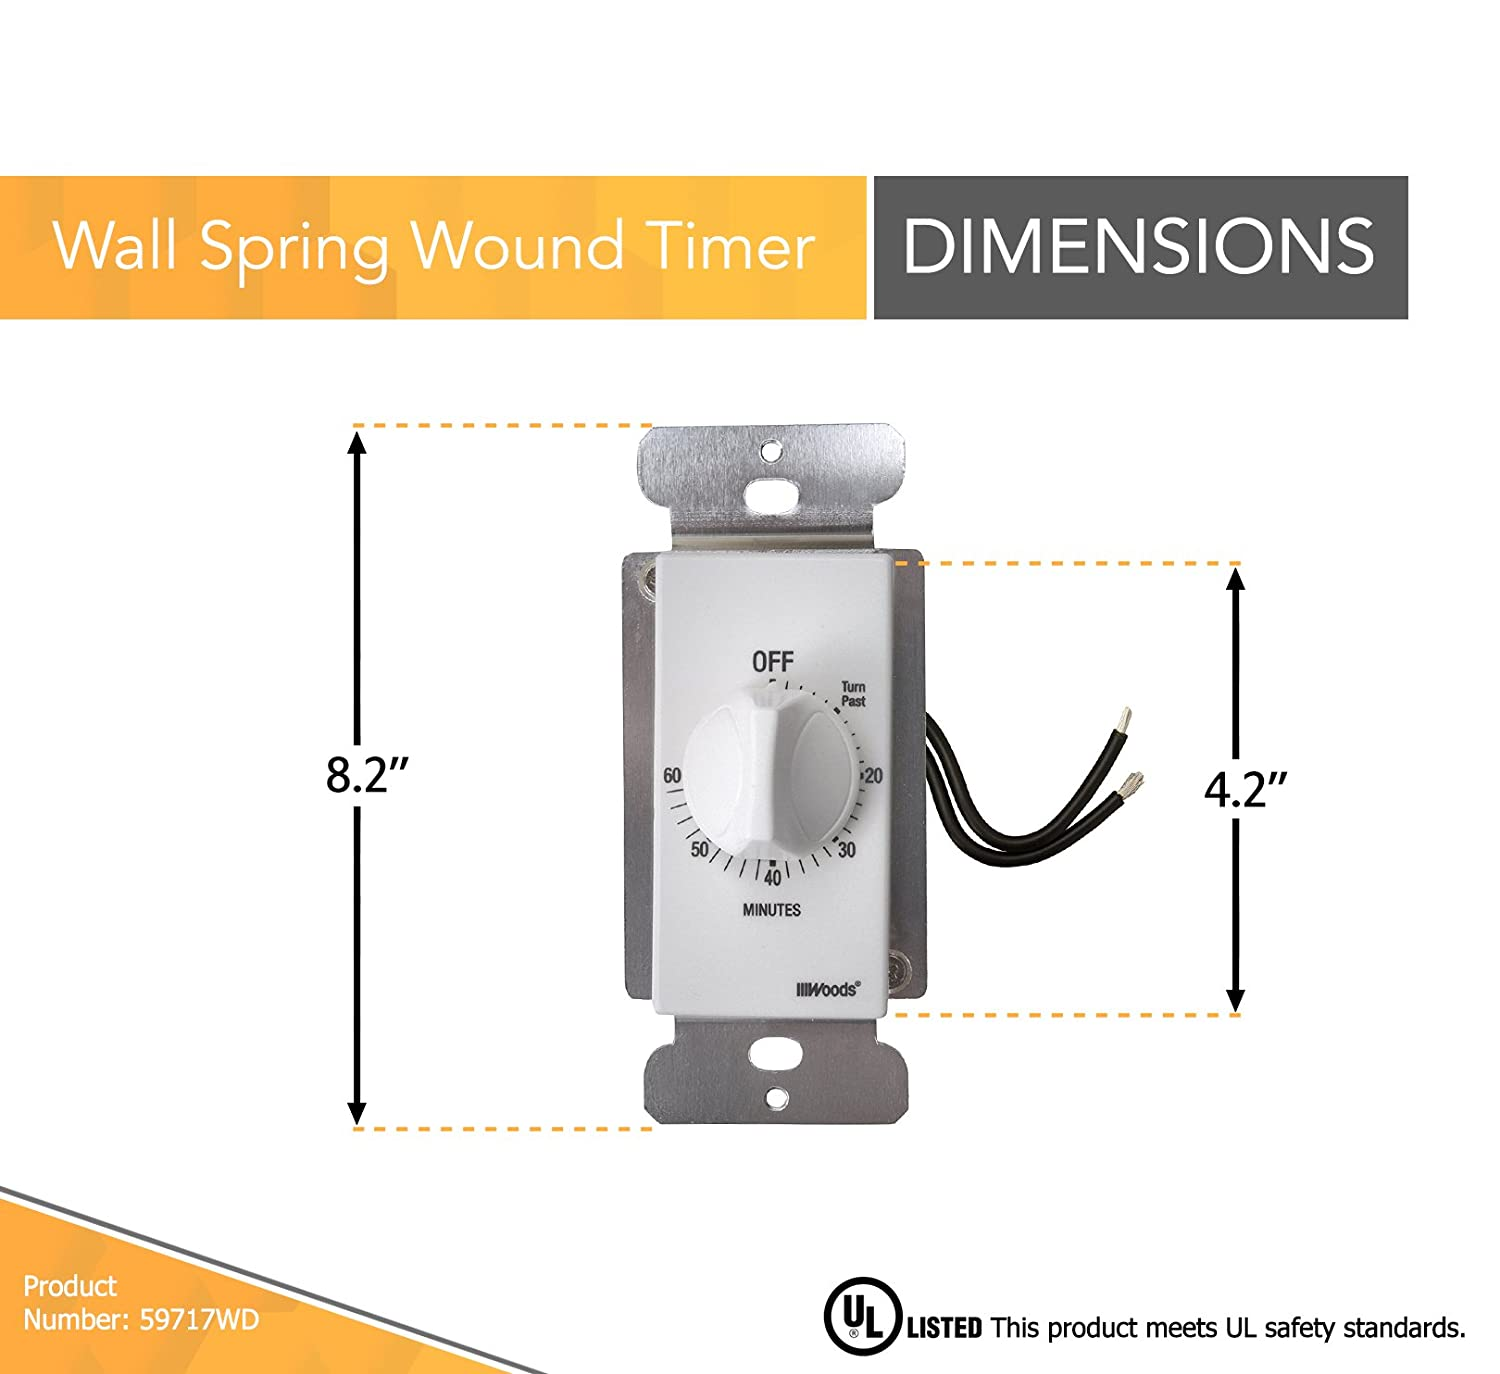 Spring Wound Timer Switch Wiring Diagram Diy Enthusiasts 3 Way Light Amazon Com Woods Wall 60 Minute White Home Rh Methods